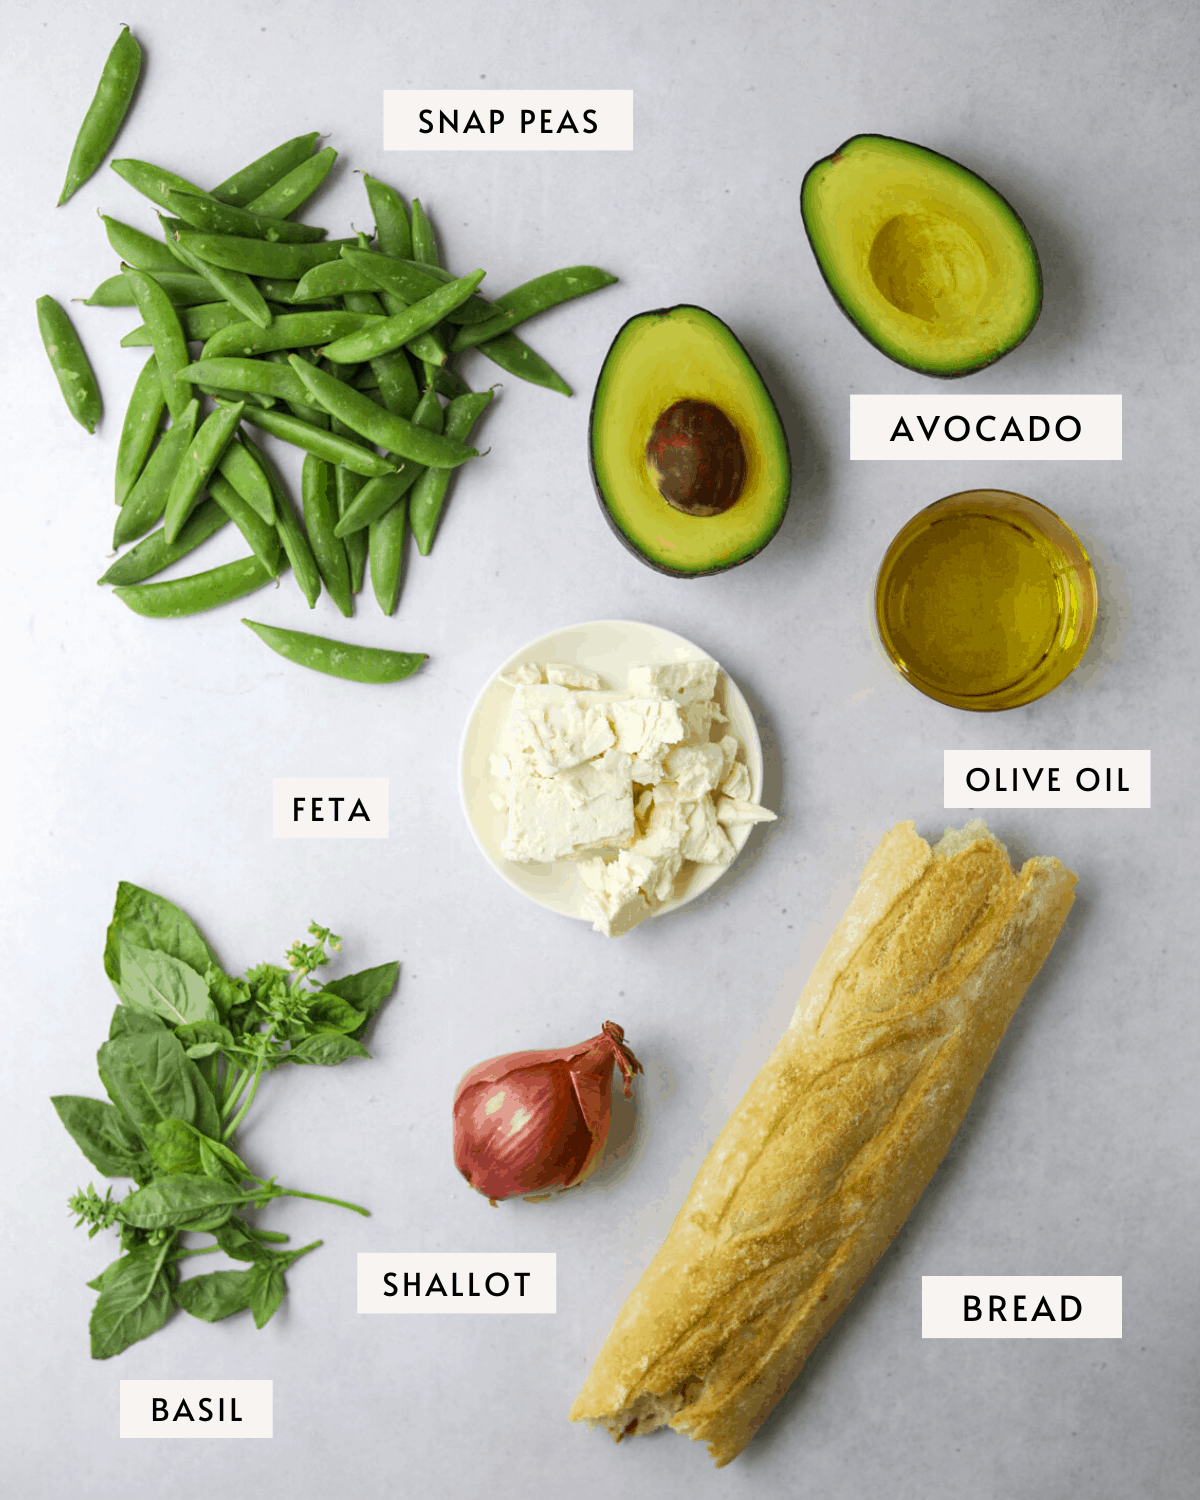 recipe ingredients on a blue background; a loaf of bread, olive oil, avocado, basil, shallot, snap peas and feta cheese